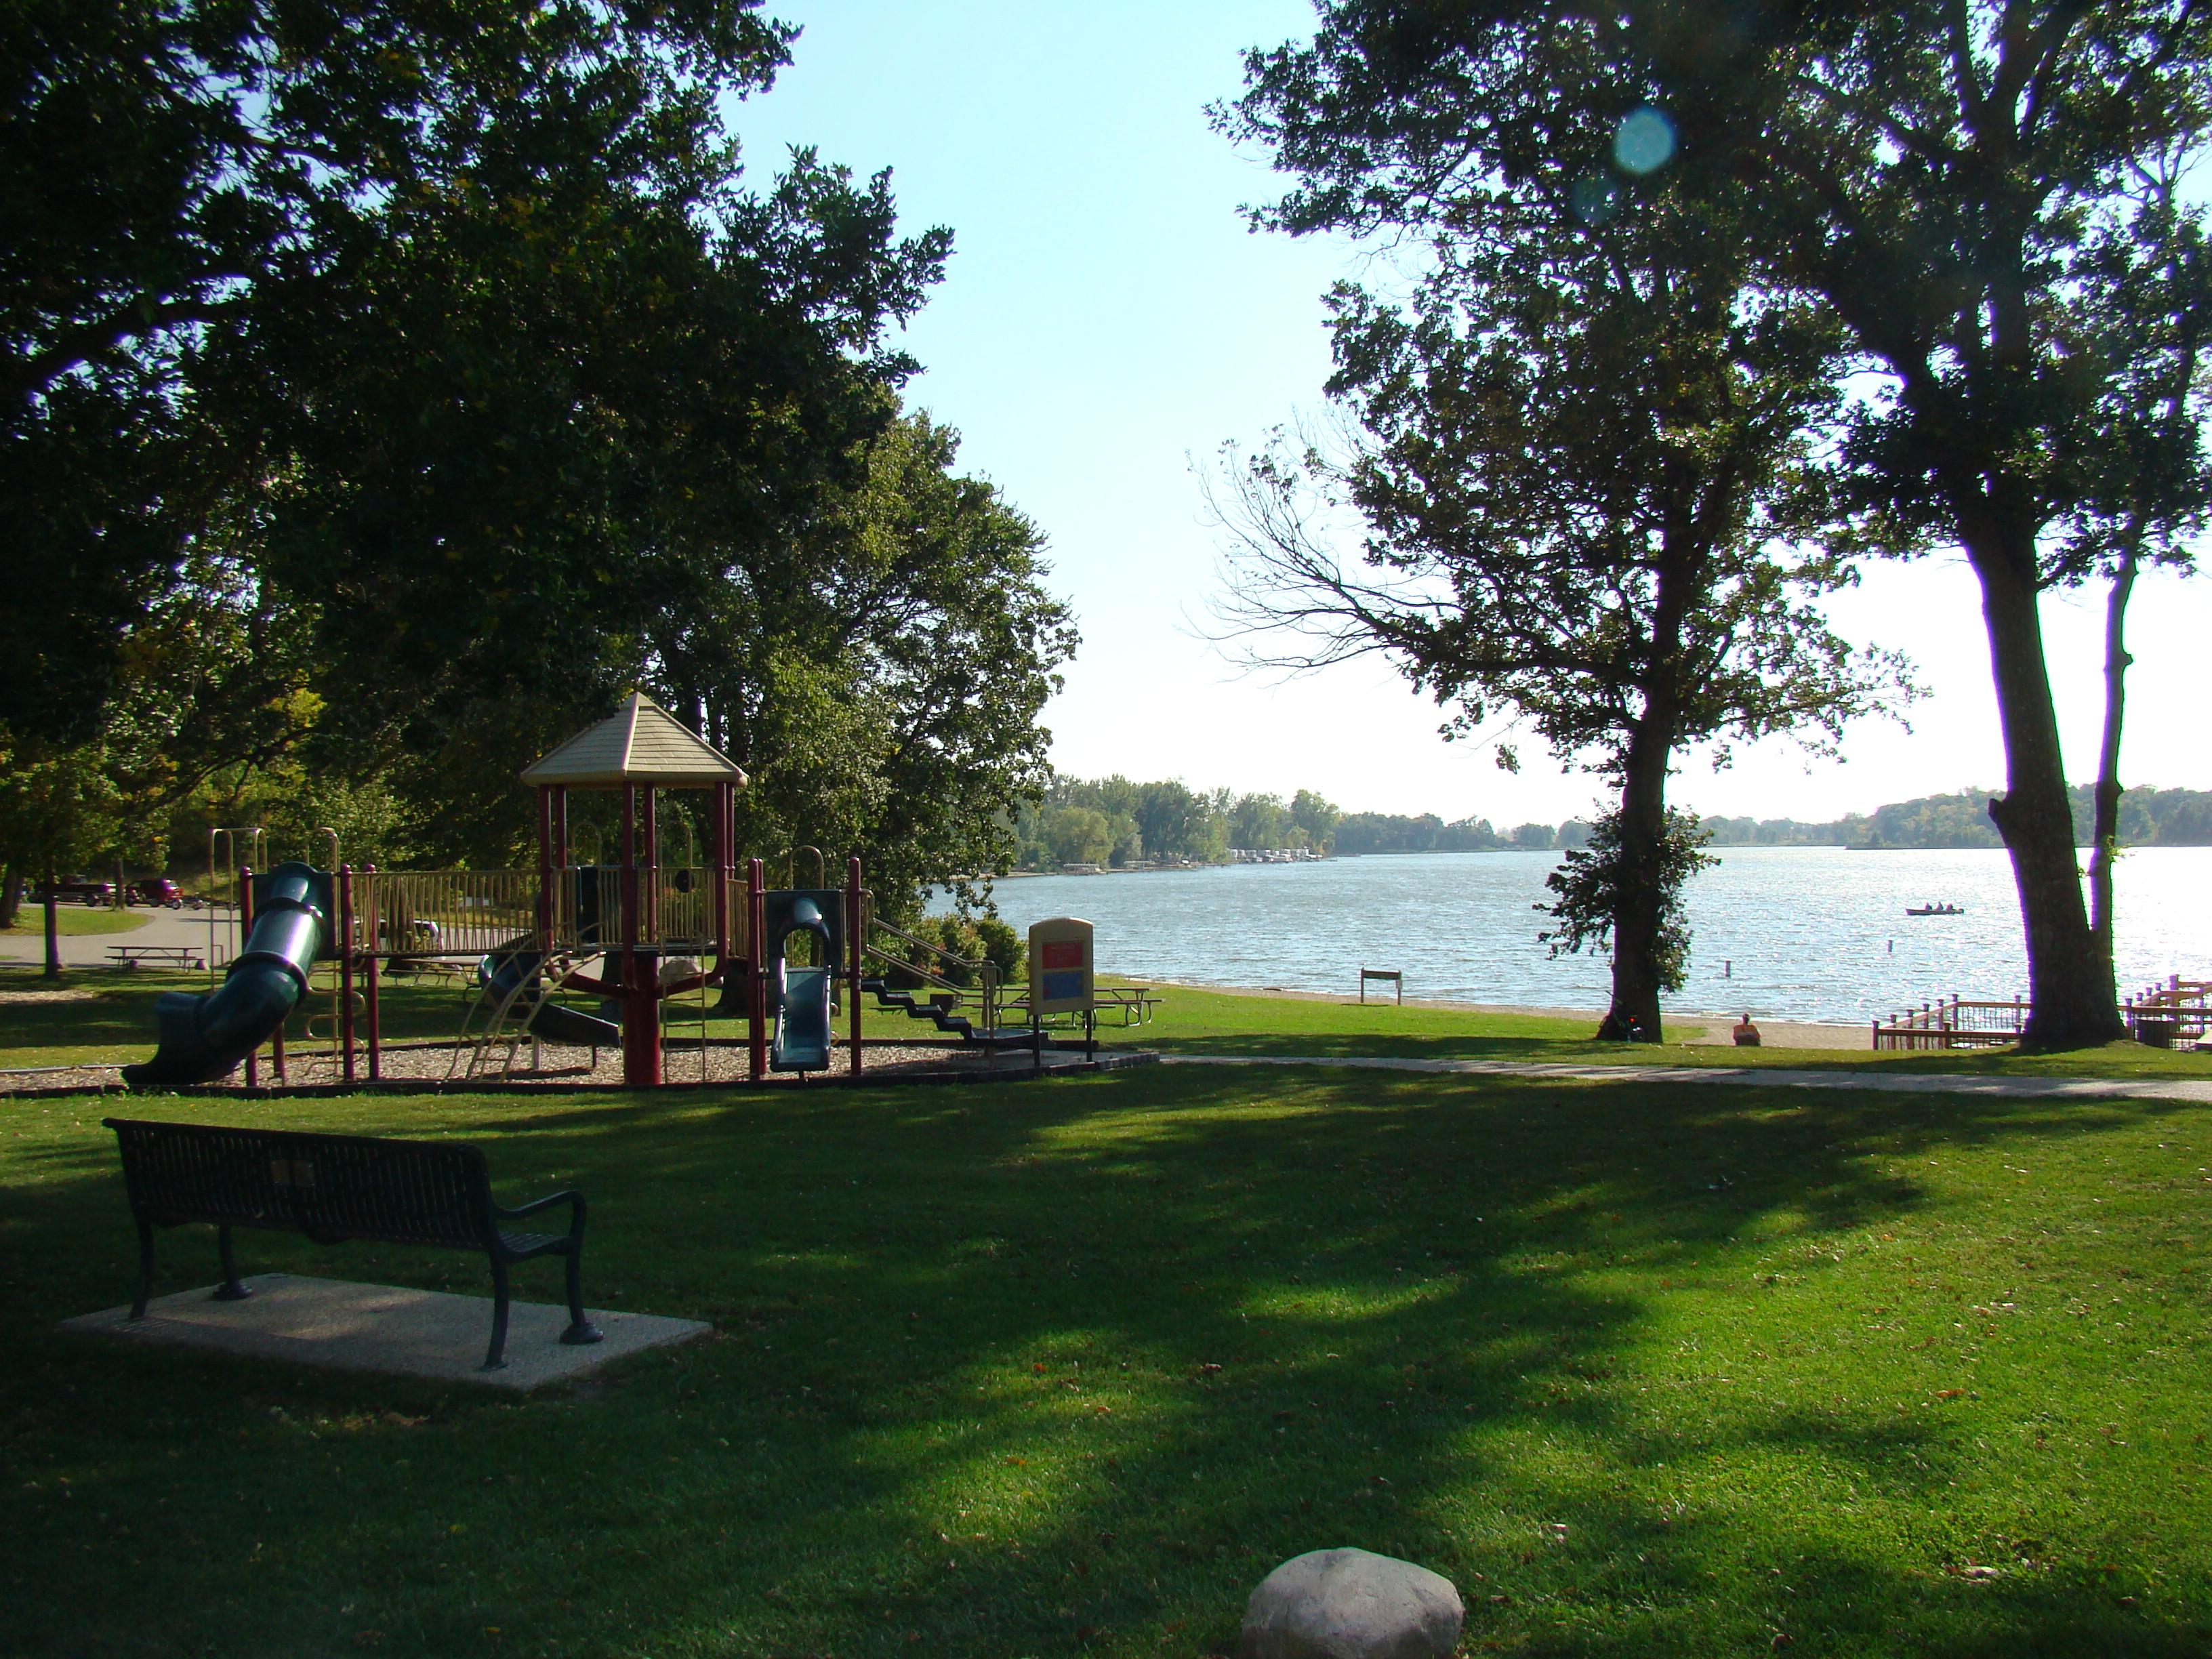 Bray Park playground equipment and beach on Madison Lake.